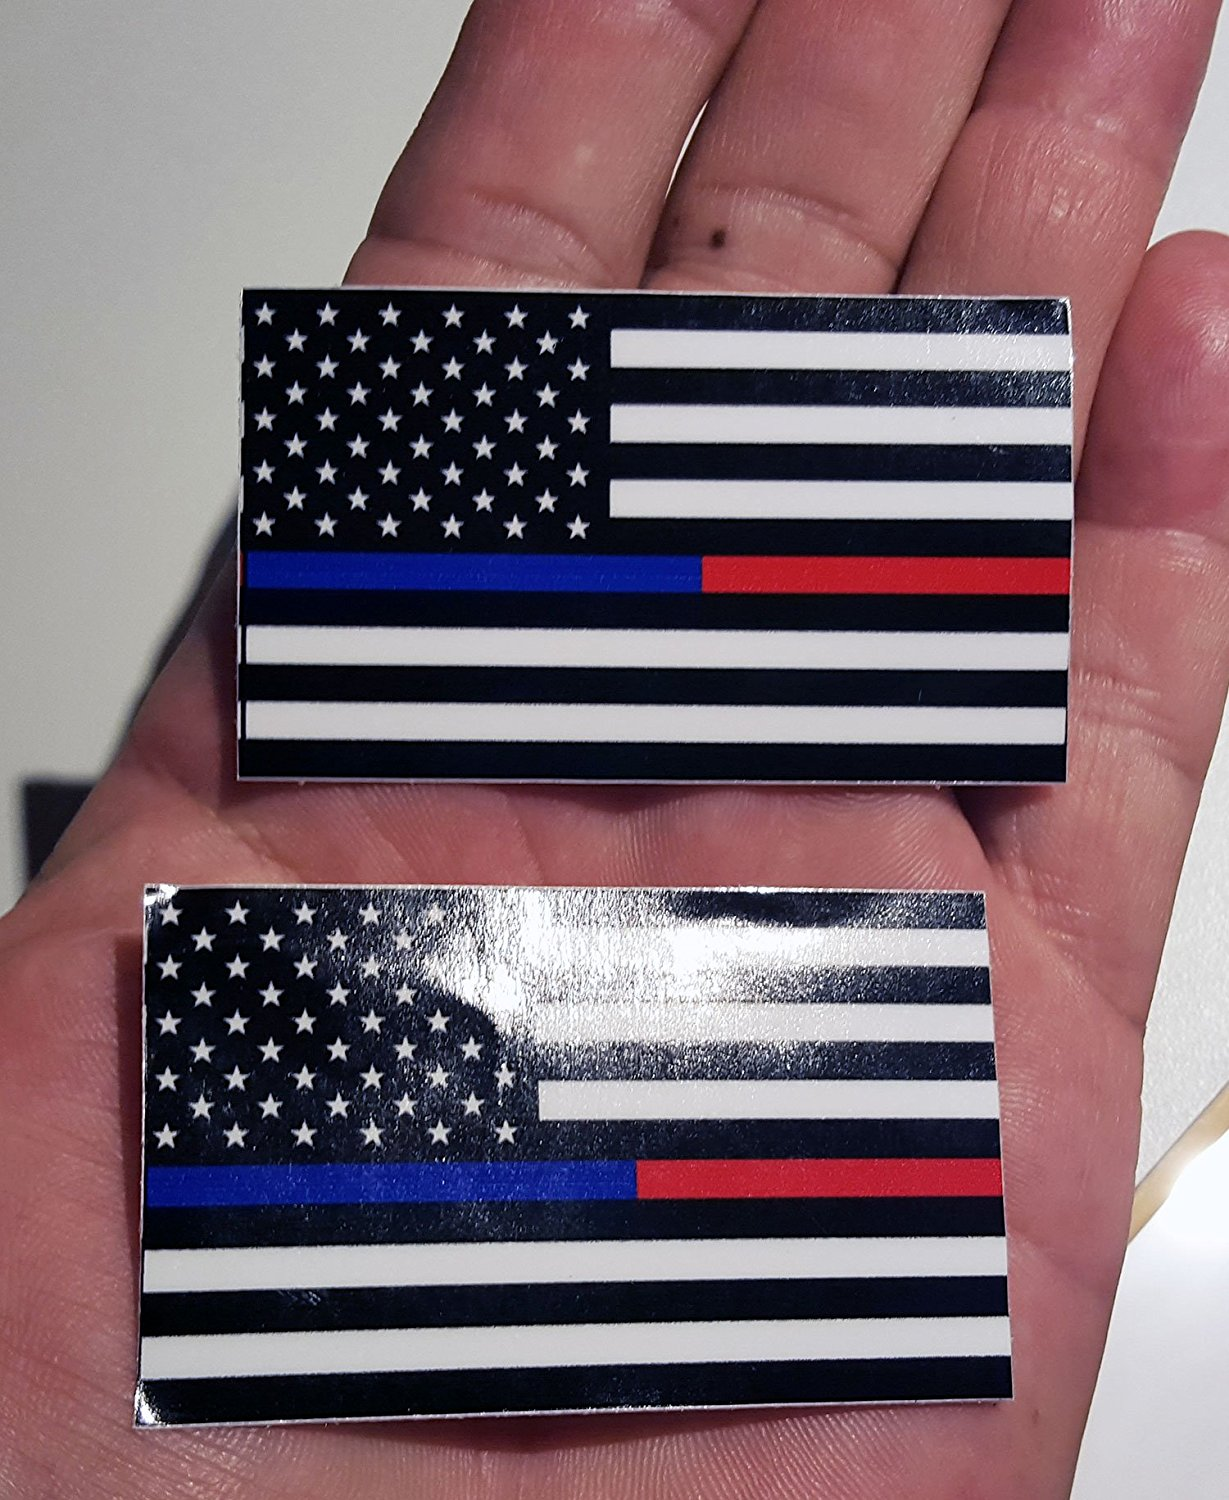 """2.5""""x1.5"""" MINI THIN BLUE LINE POLICE & THIN RED LINE FIREFIGHTER DECAL Respect and Honor Law enforcement First Responder US flag 3x5 Inches DECAL USA (2 pack)"""